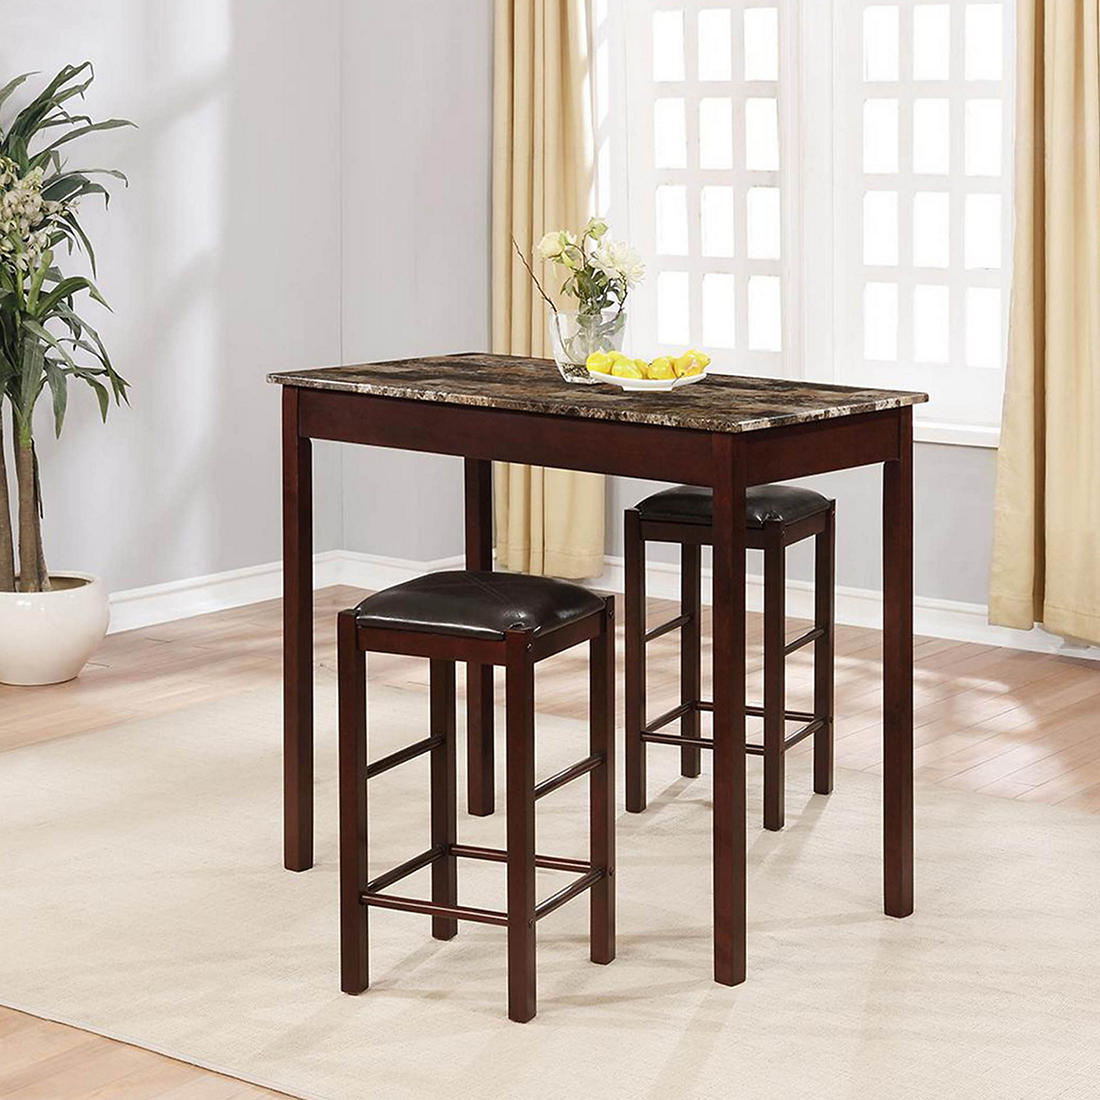 Incredible Linon 3 Pc Tavern Side Table And Stool Set Ocoug Best Dining Table And Chair Ideas Images Ocougorg